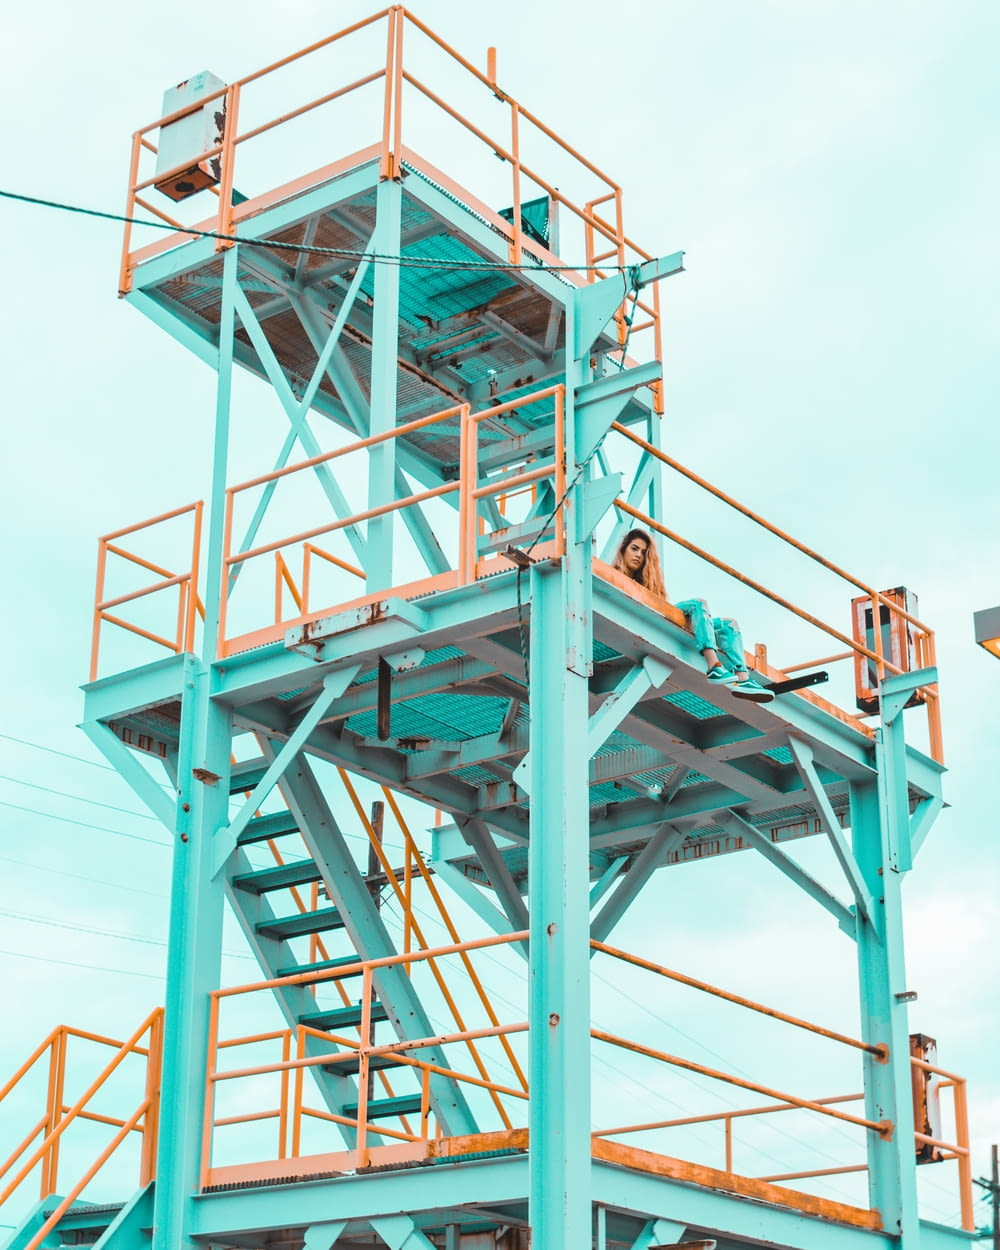 woman sitting on teal and yellow metal tower during daytime